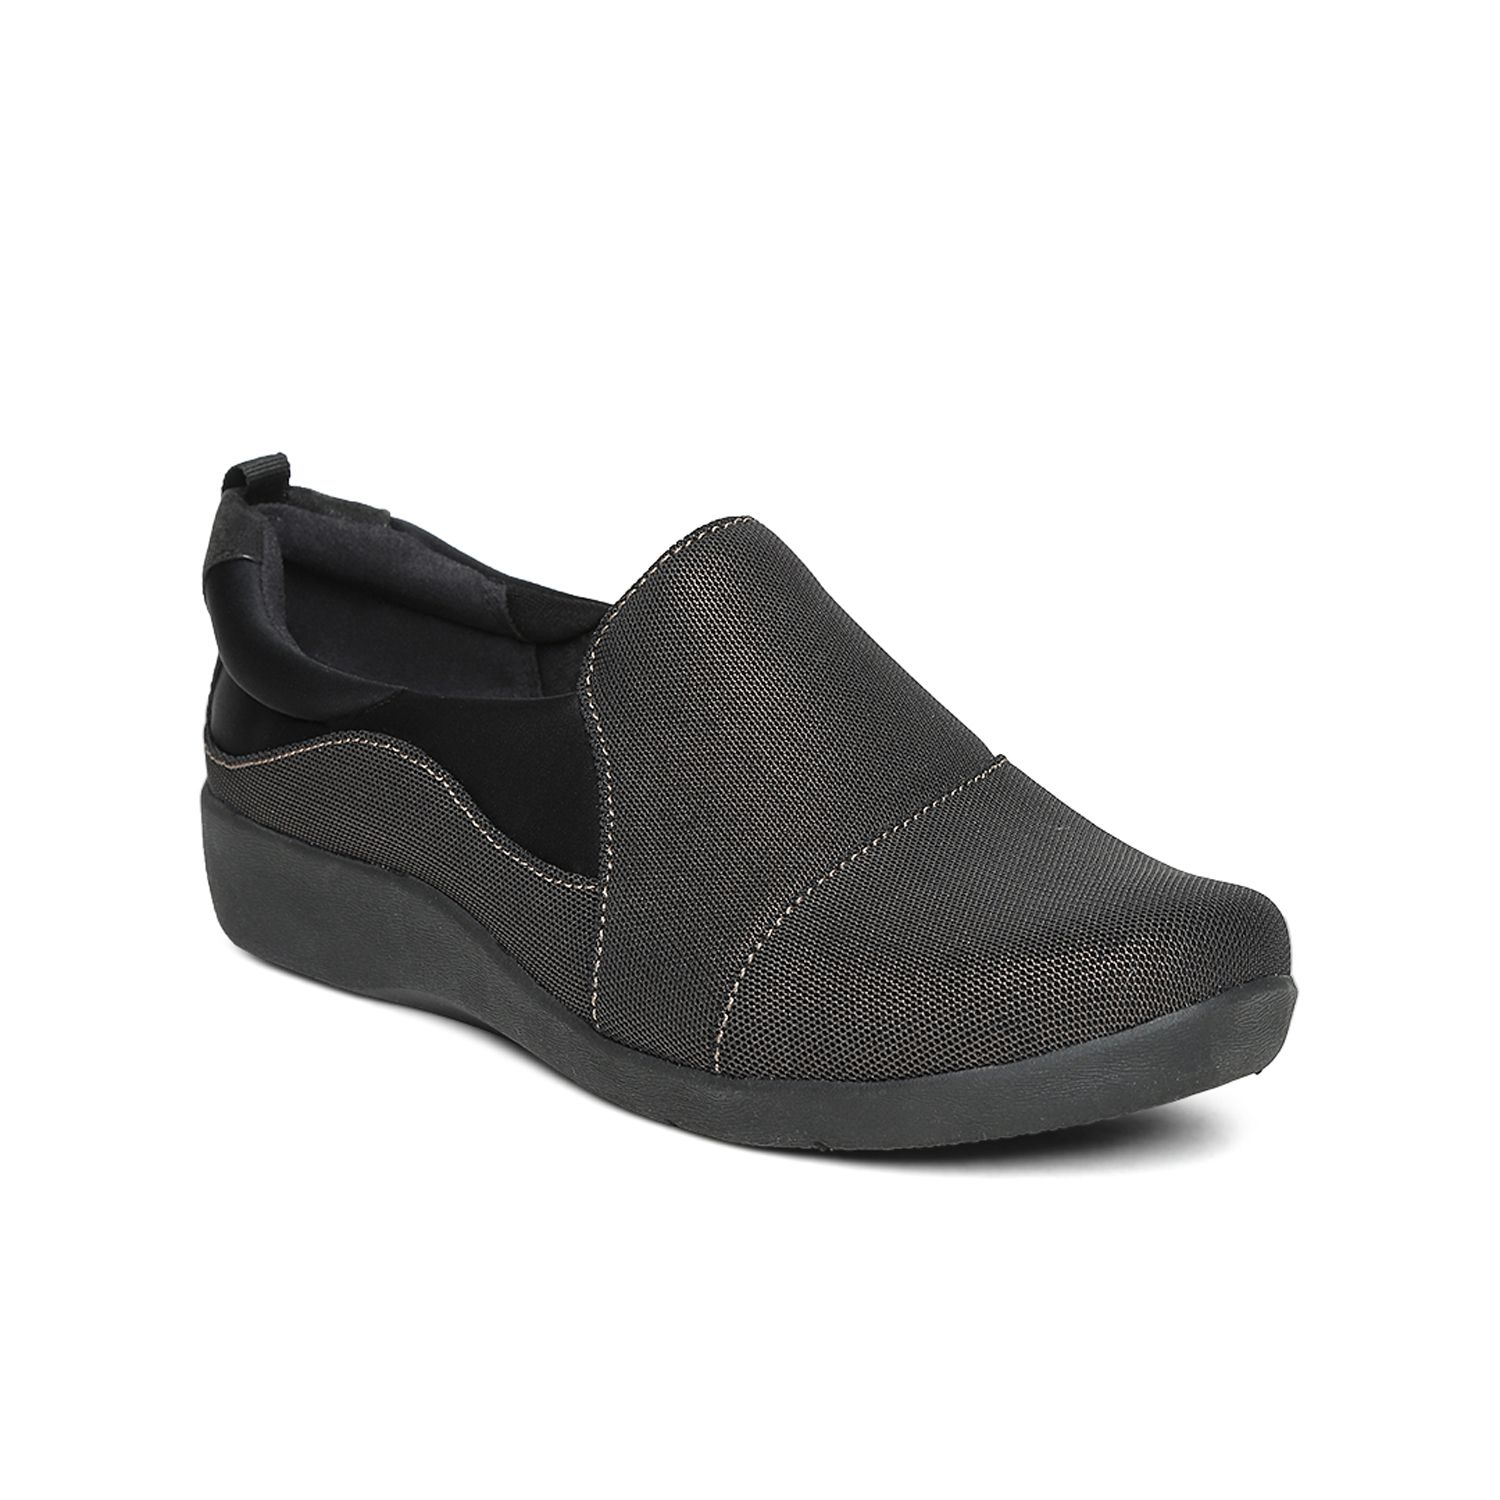 Clarks Brown Casual Shoes